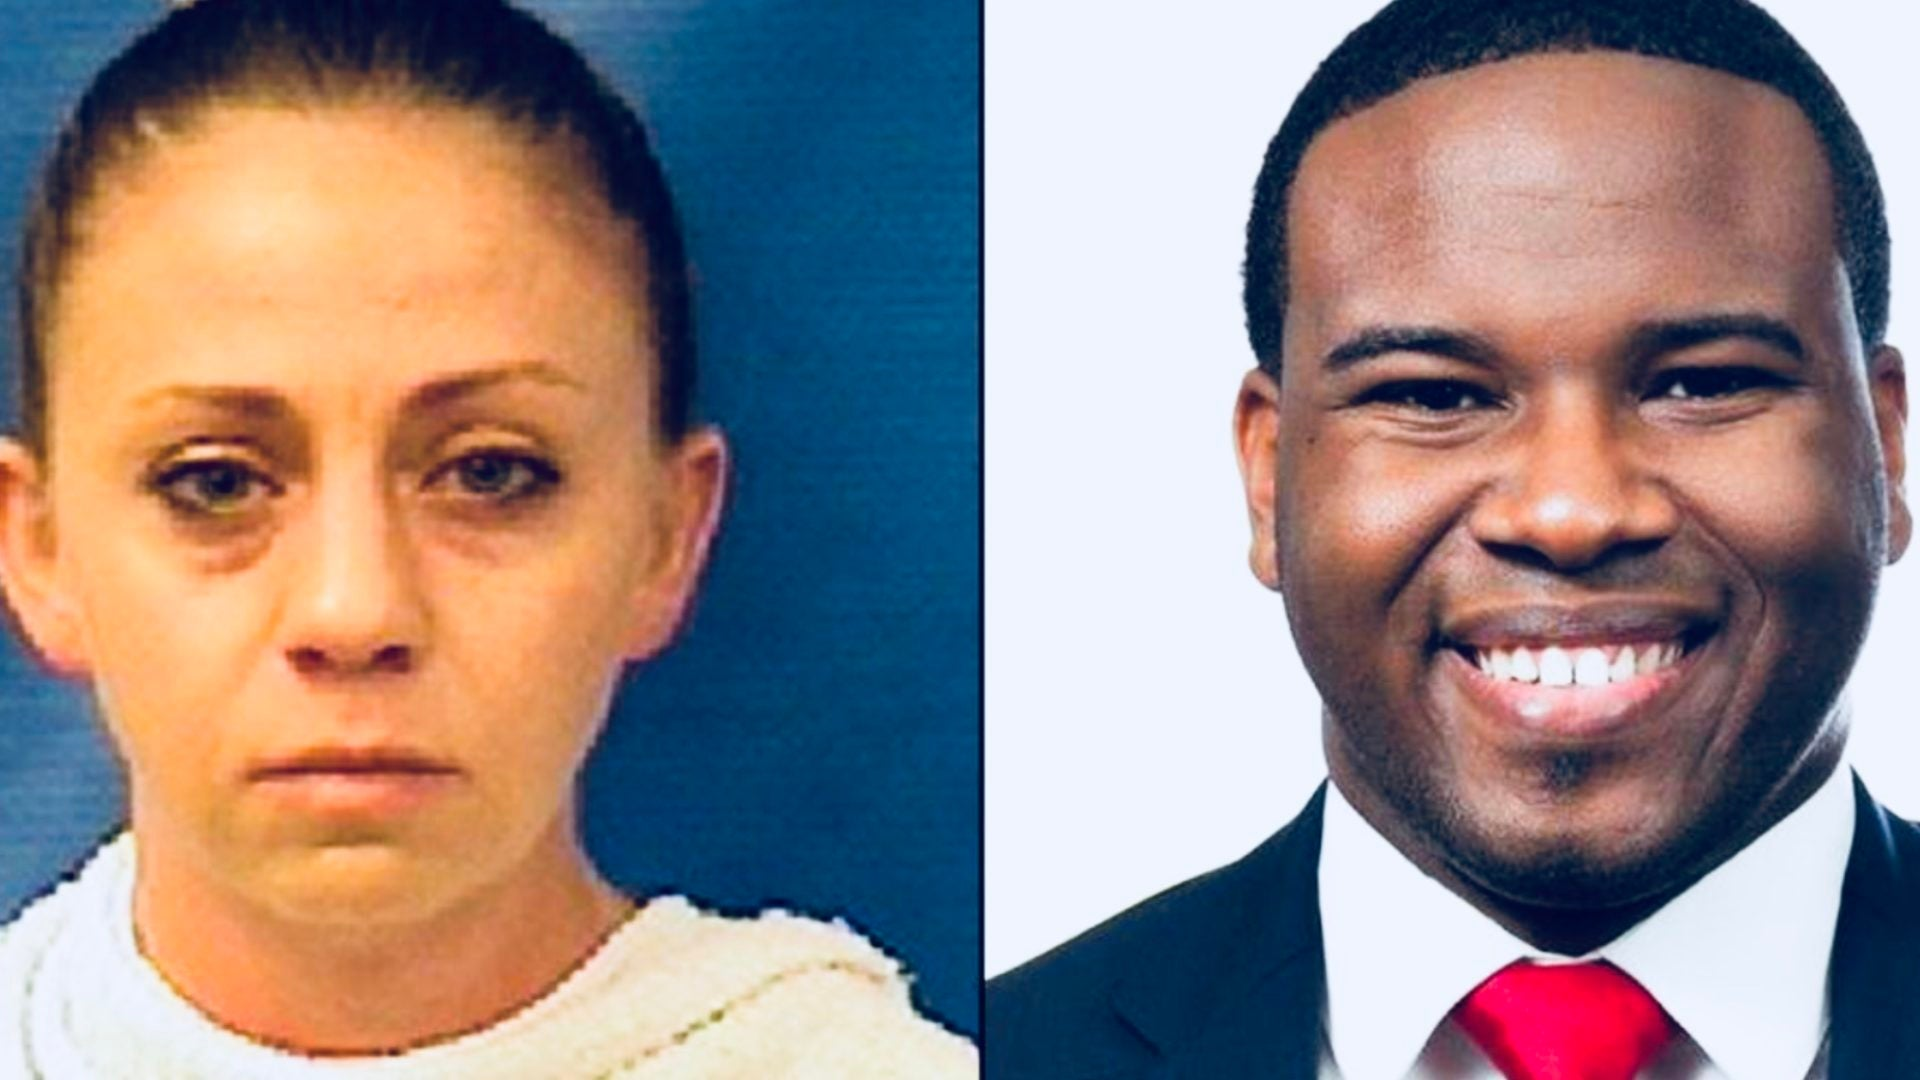 Amber Guyger, 'Devil' Who Killed Botham Jean, Is On State-Sponsored Vacation